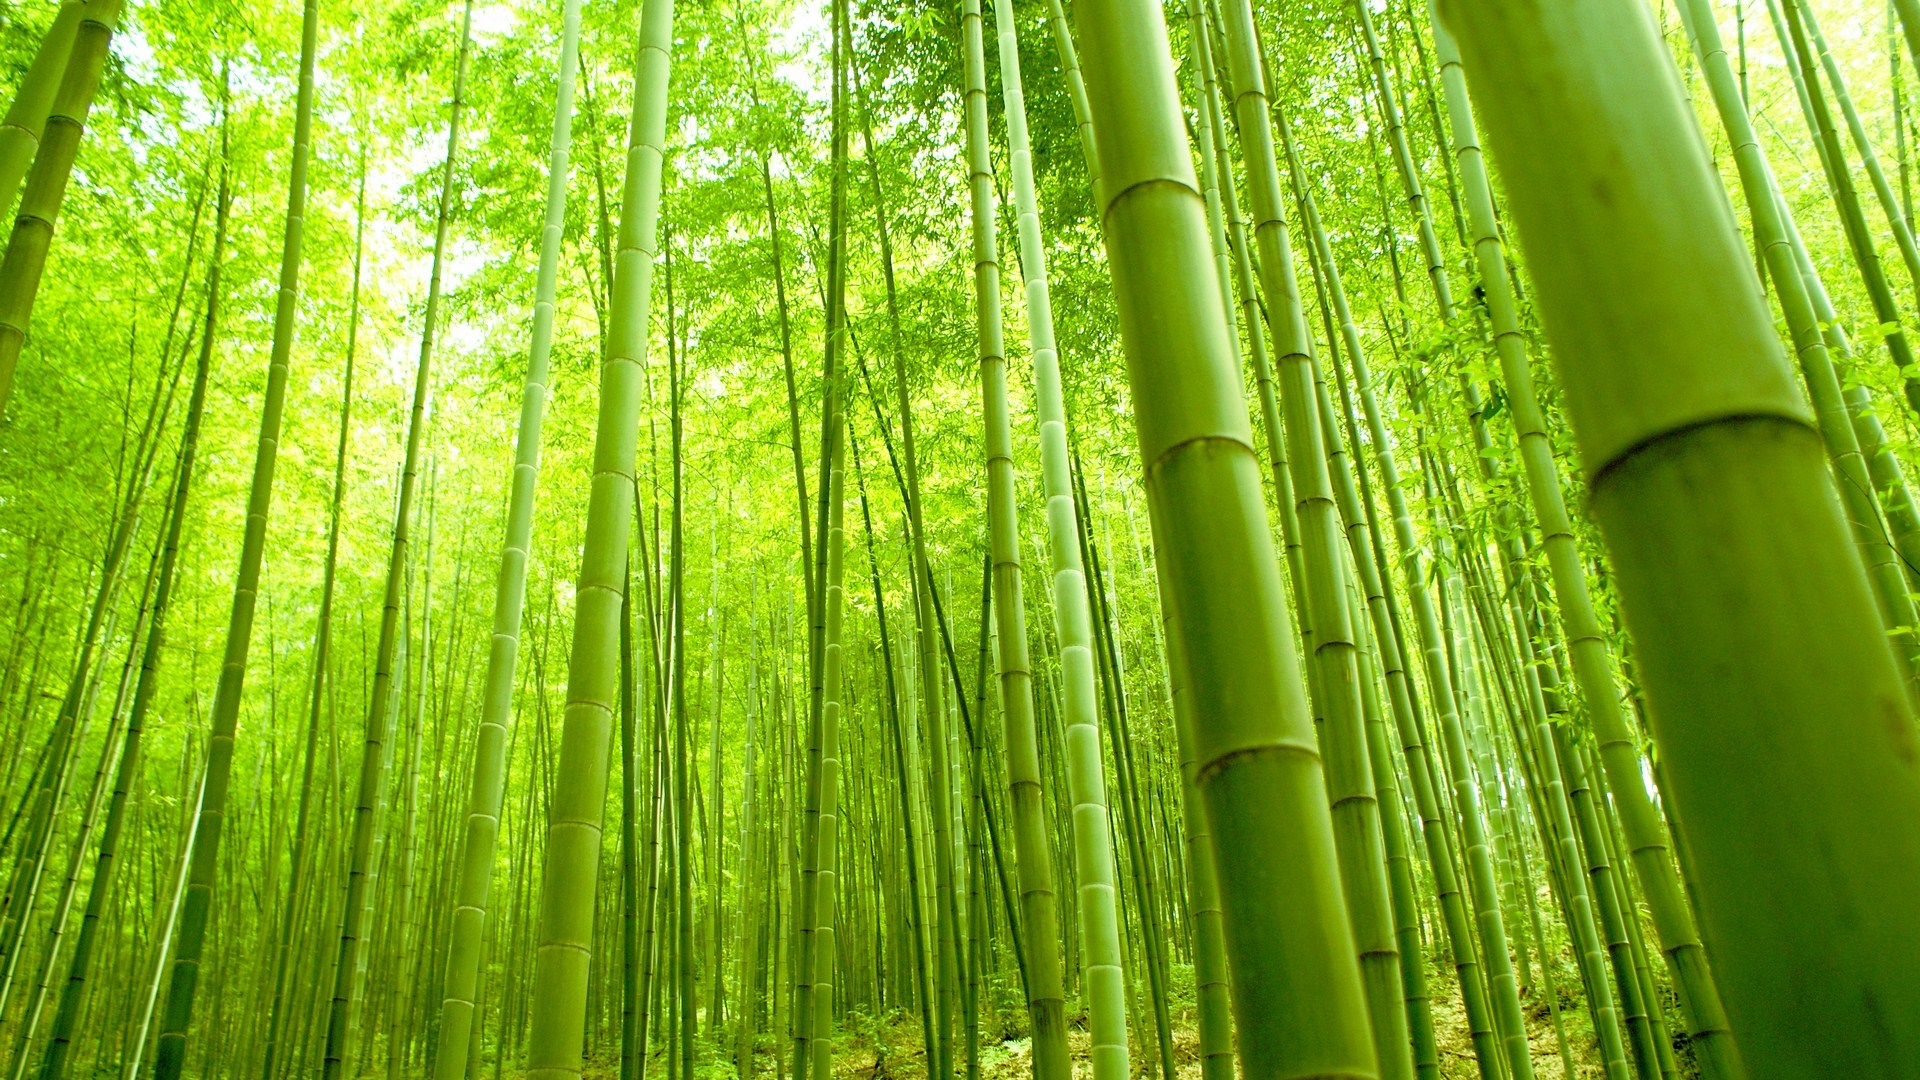 Bamboo Forest Wallpaper Hd - Bamboo Tree , HD Wallpaper & Backgrounds